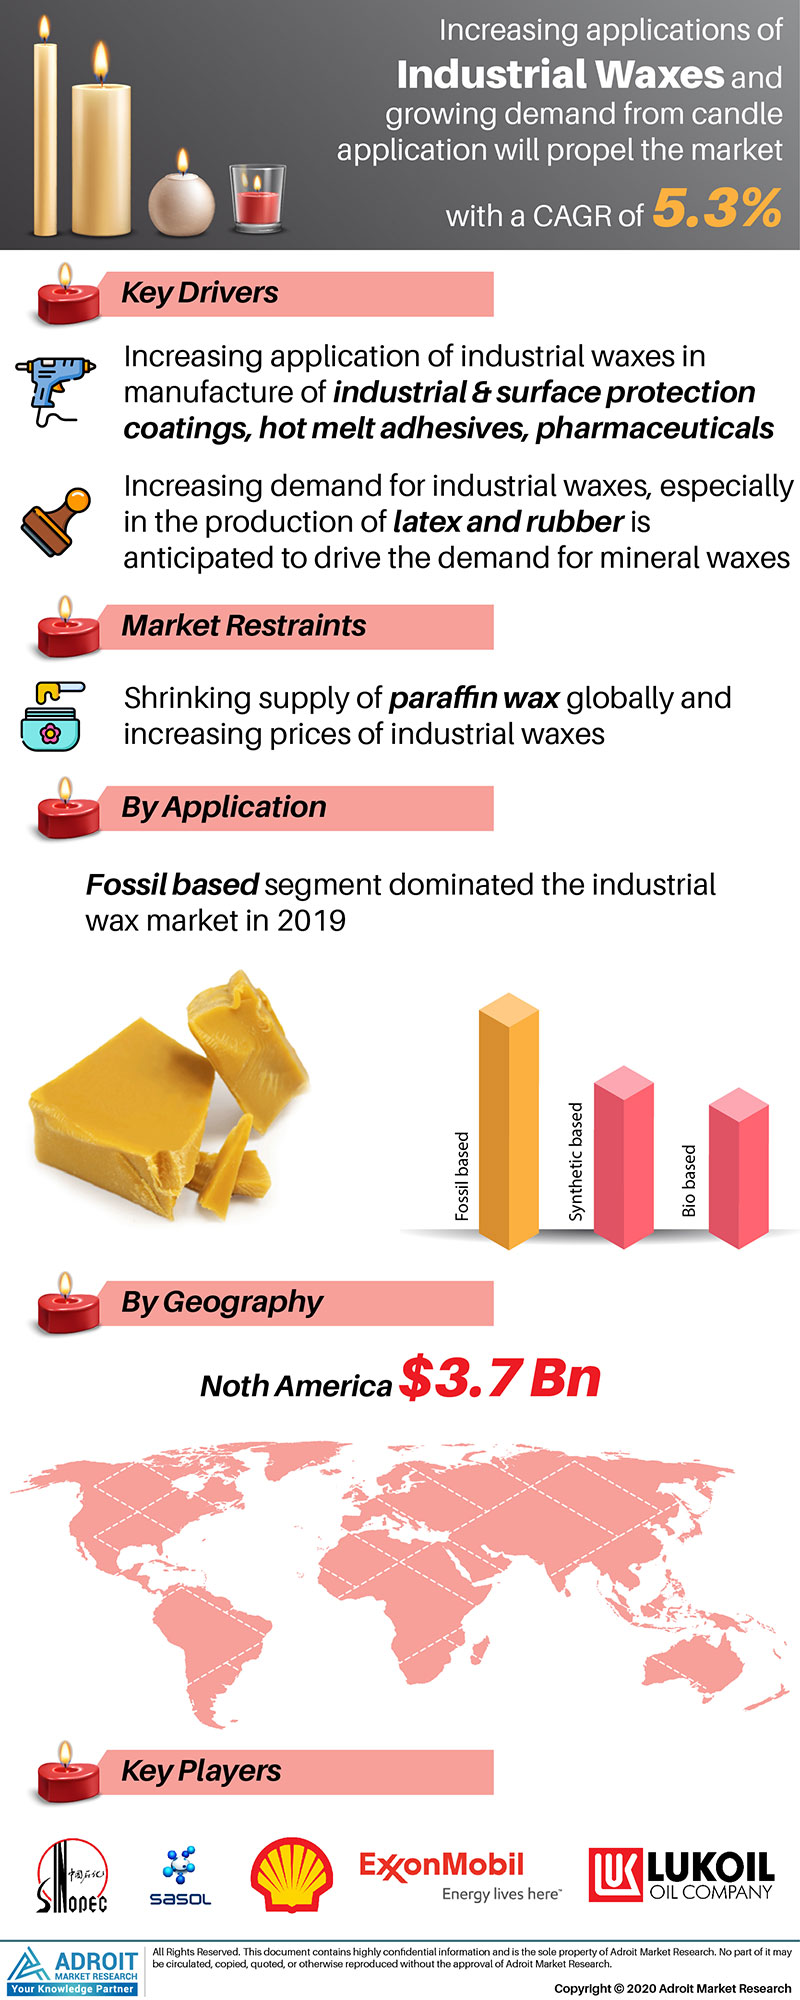 Industrial Wax Market by Material, Application, and Region, Global Forecasts 2018 to 2025